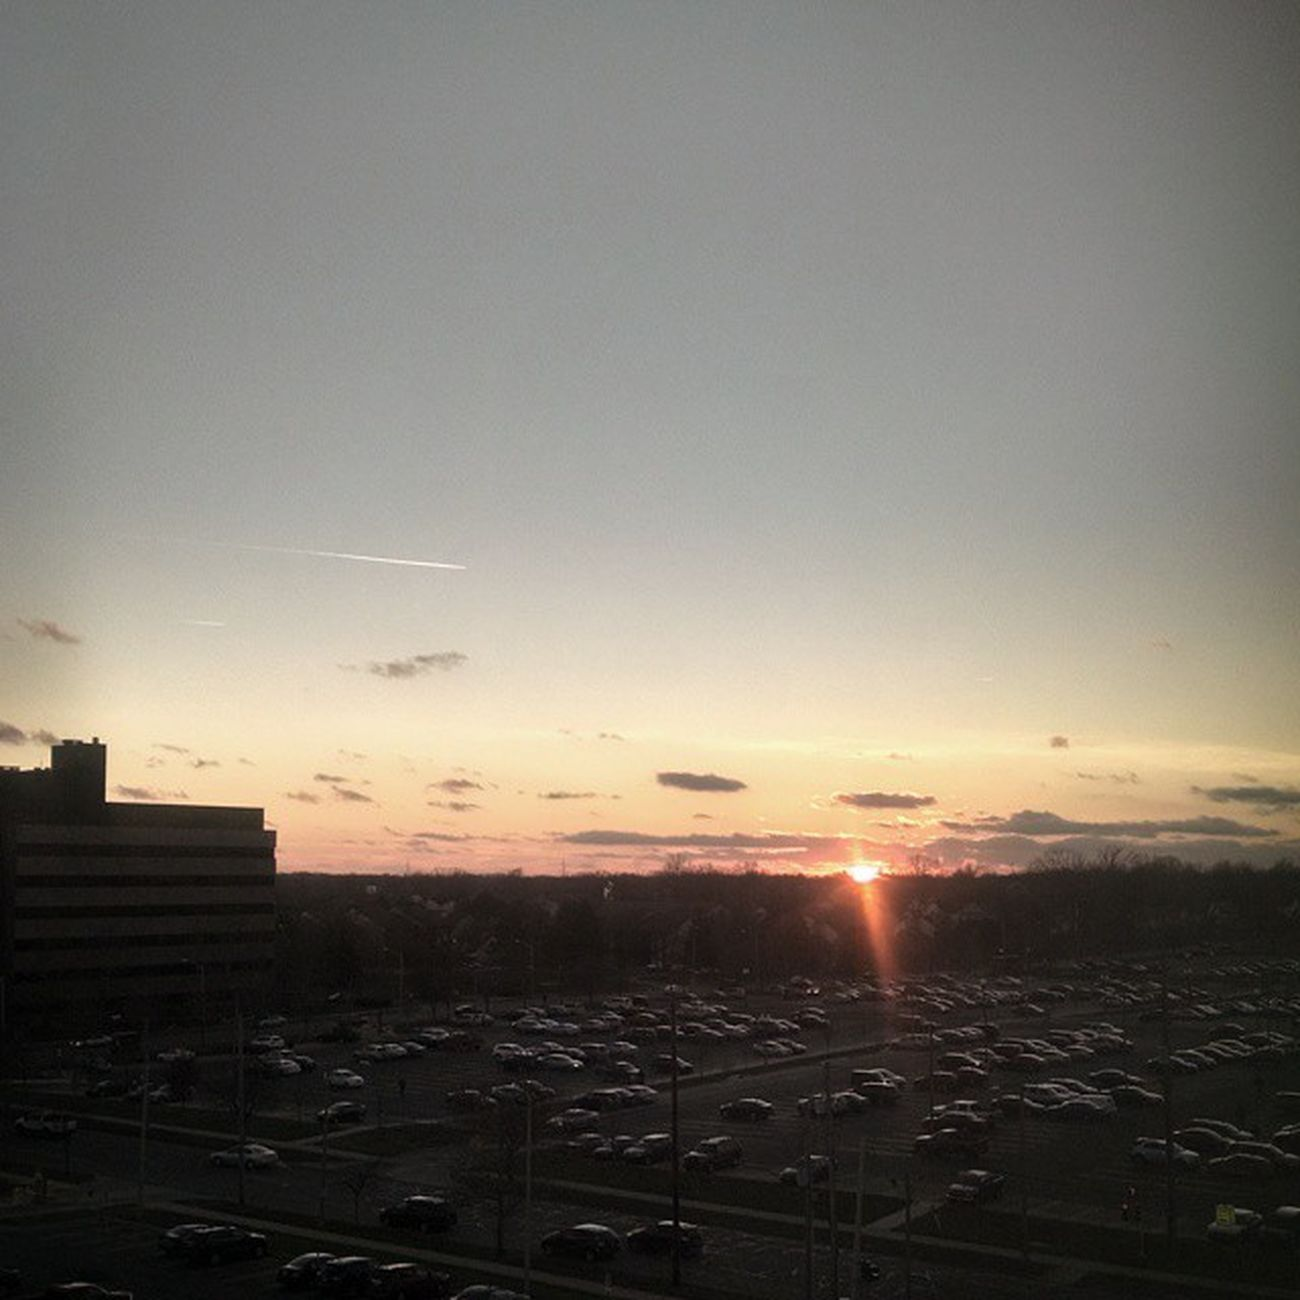 Sunset over Lovelansing .